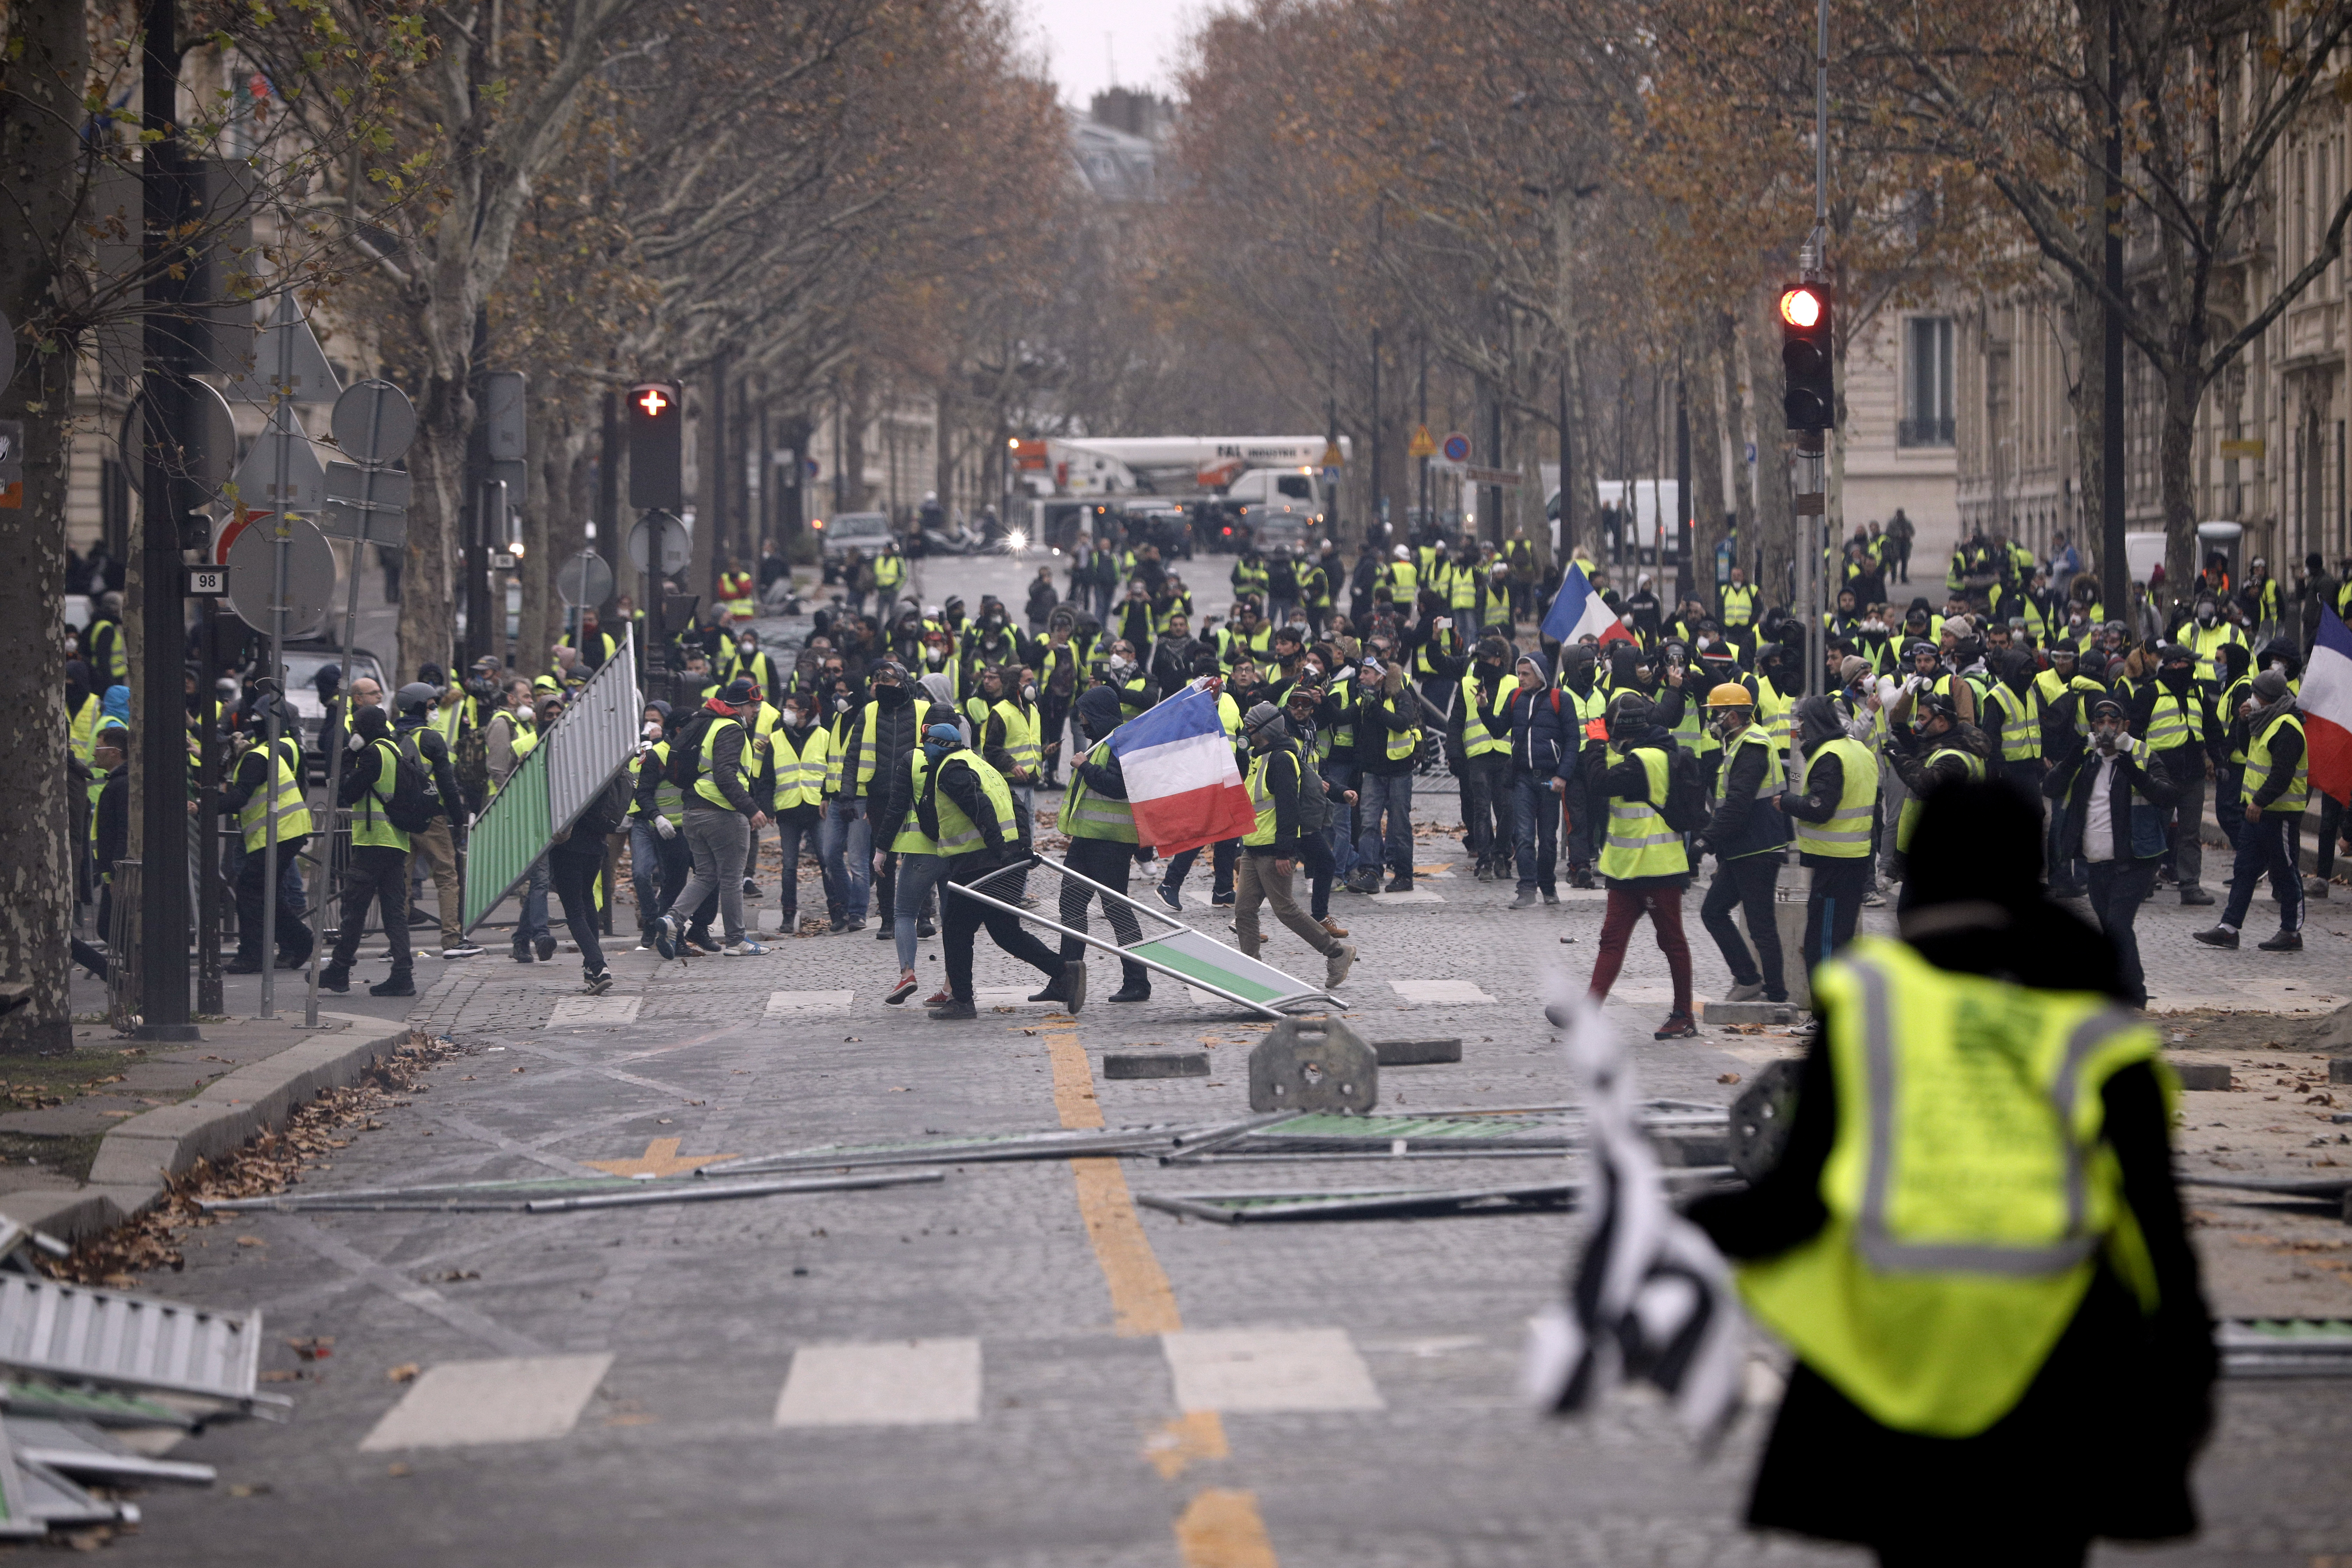 Demonstrators build a barricade near the Champs-Elysees during a demonstration  Hundreds arrested after Paris protest riot 305f8d01 2b5b 4c48 bc77 7028567c59b8